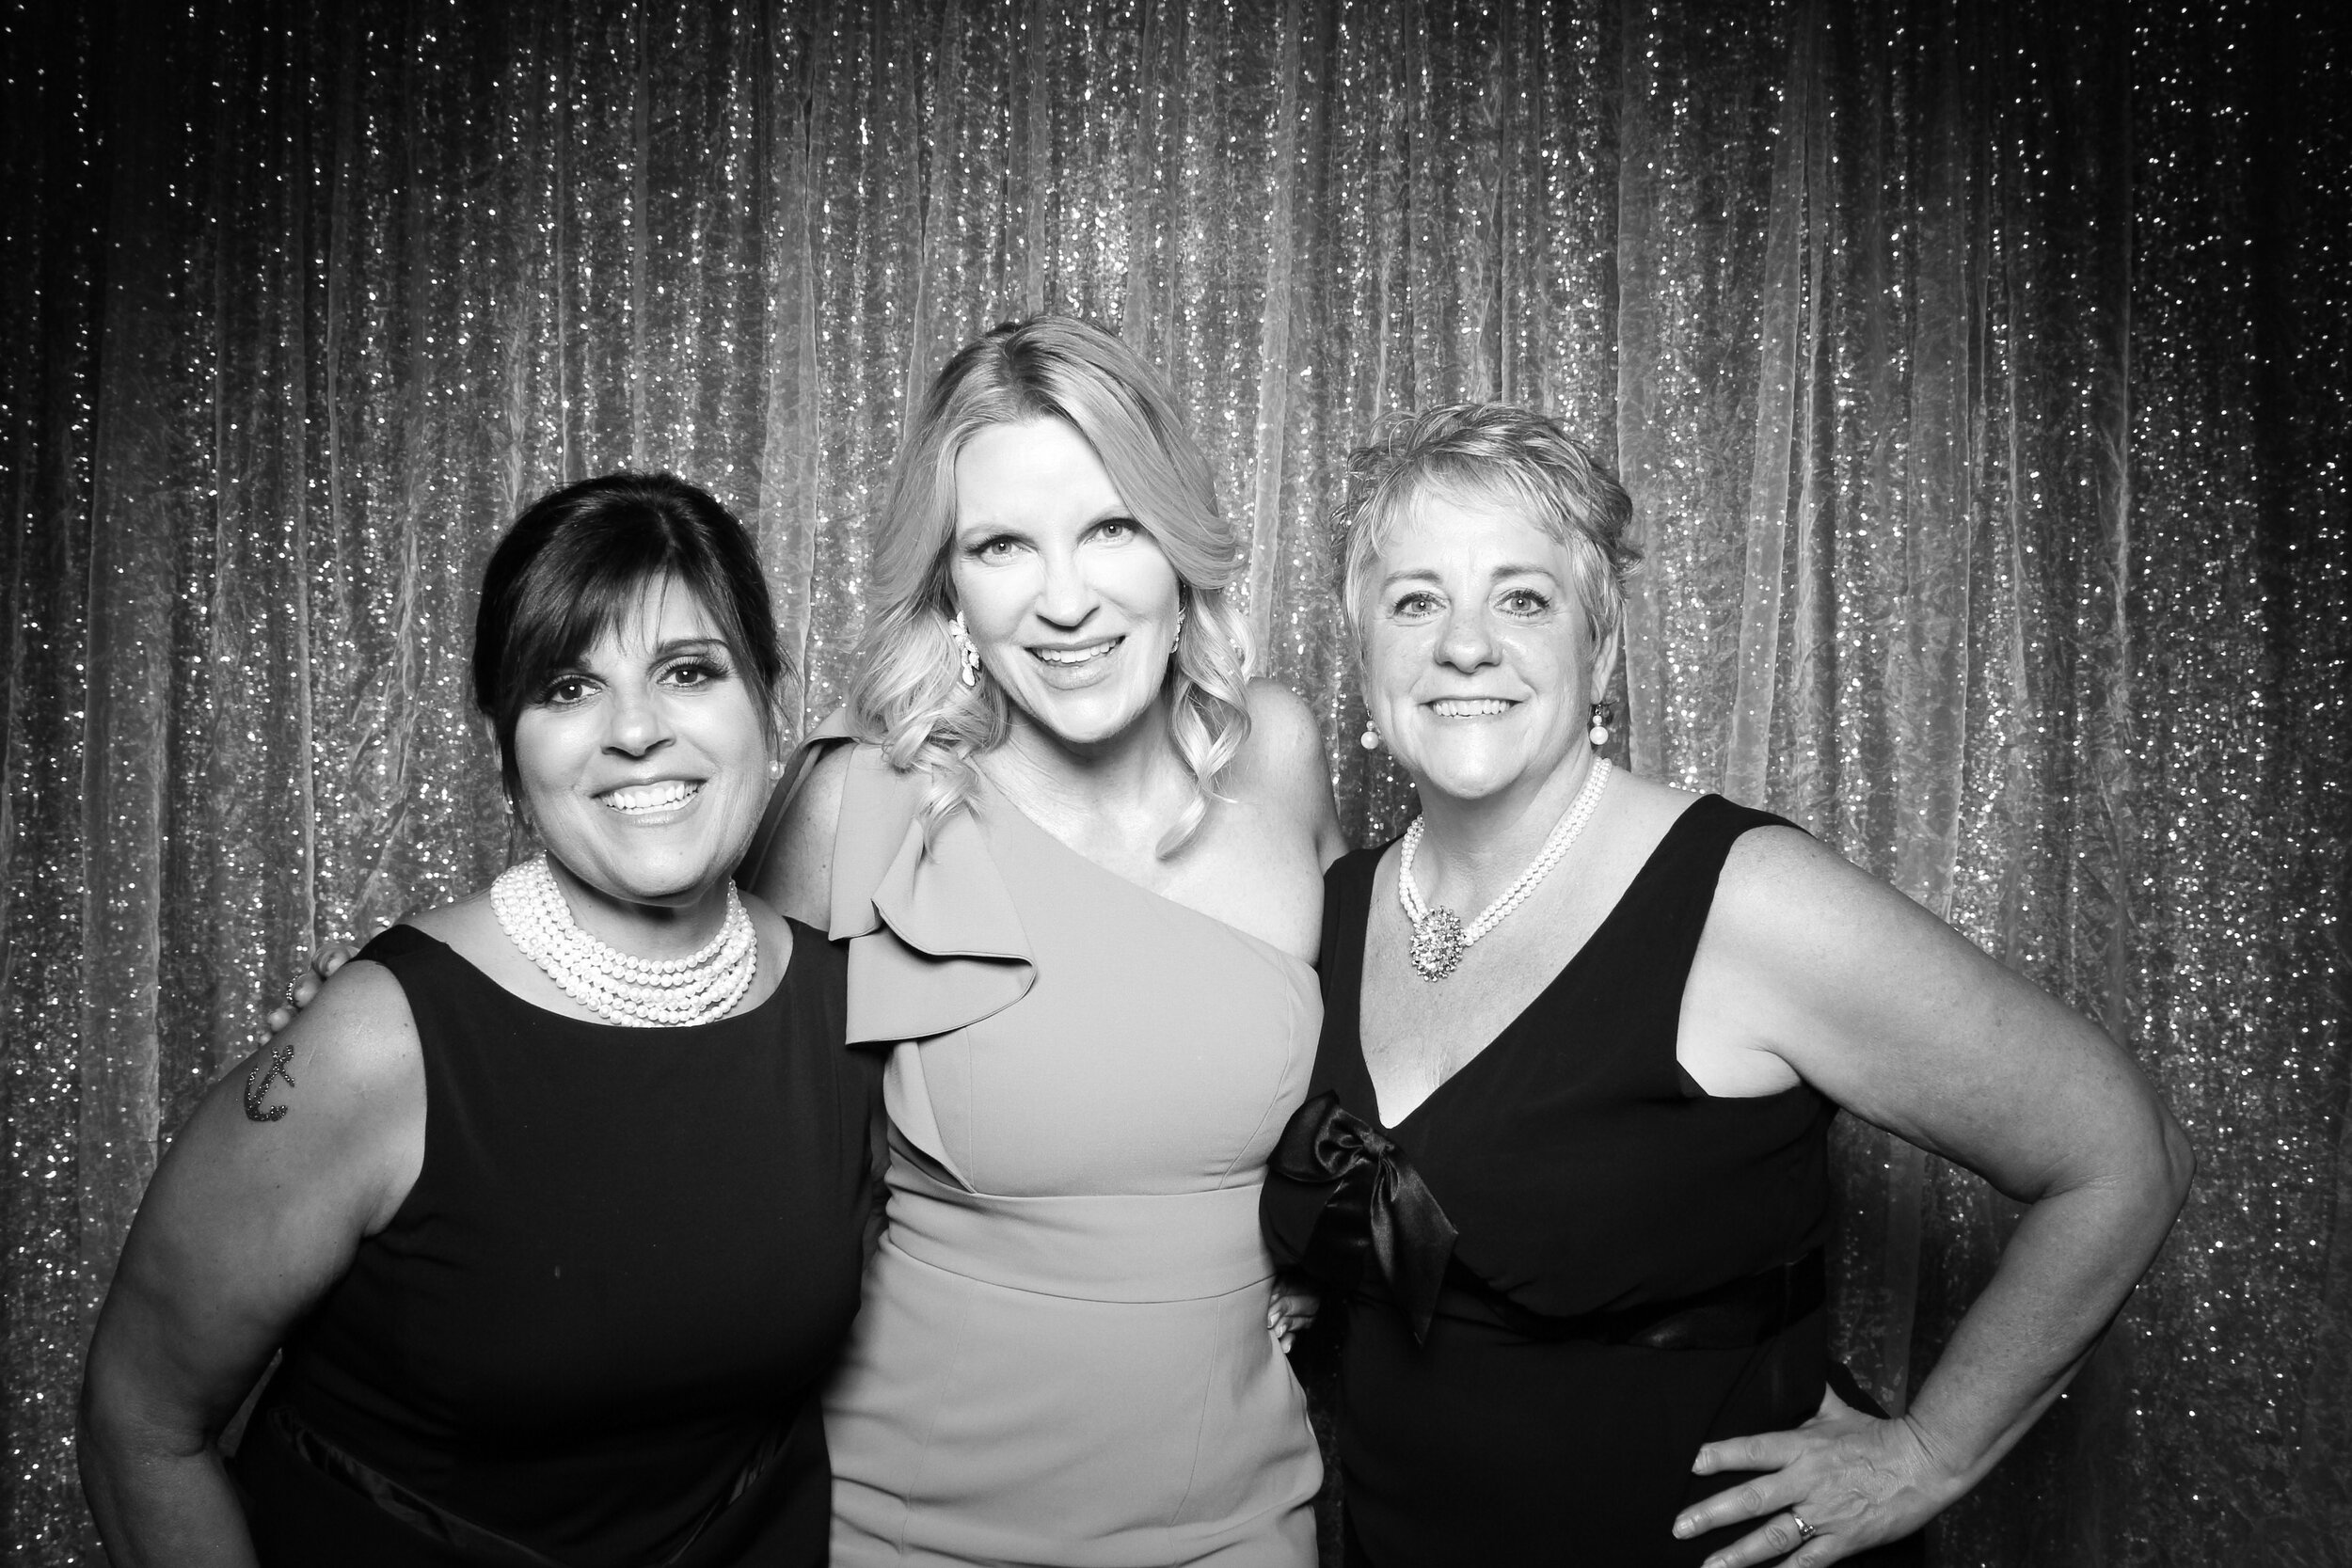 Chicago_Vintage_Wedding_Photobooth_Country_Club_15.jpg